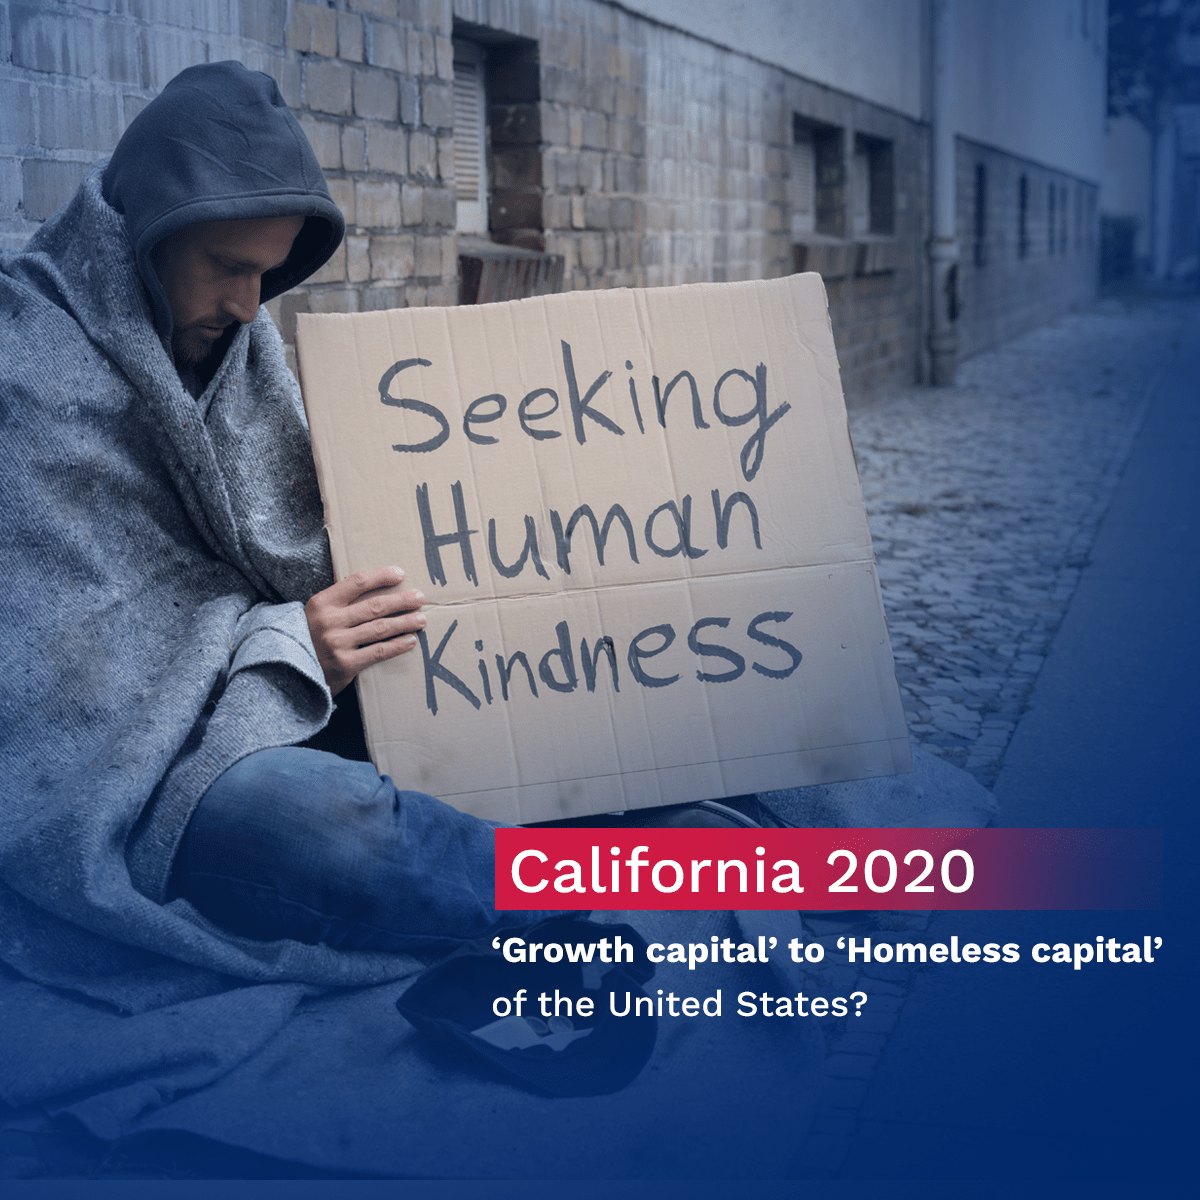 https://www.tandonforcongress.com/wp-content/uploads/2020/01/seeking-human-kindness.png